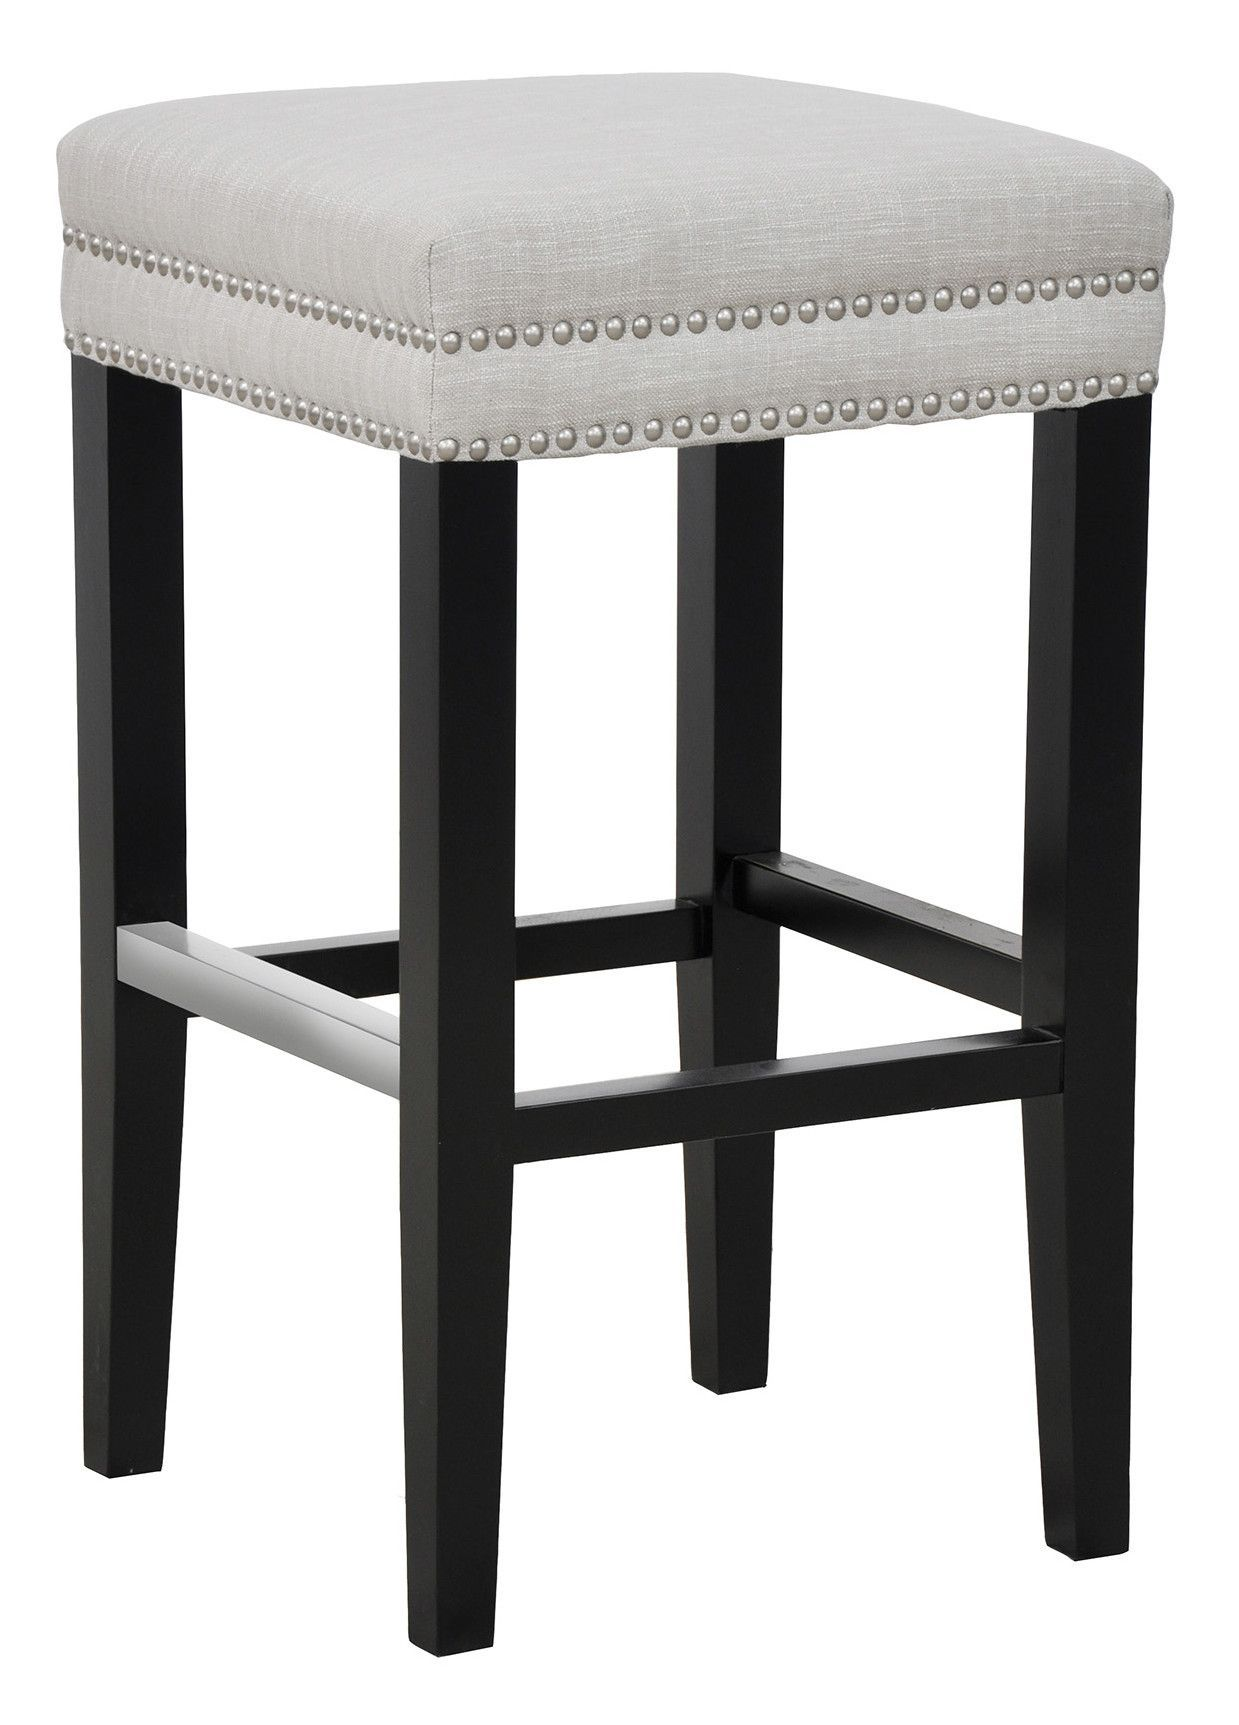 Debra Backless 24 Quot Bar Stool Kitchens Backless Bar